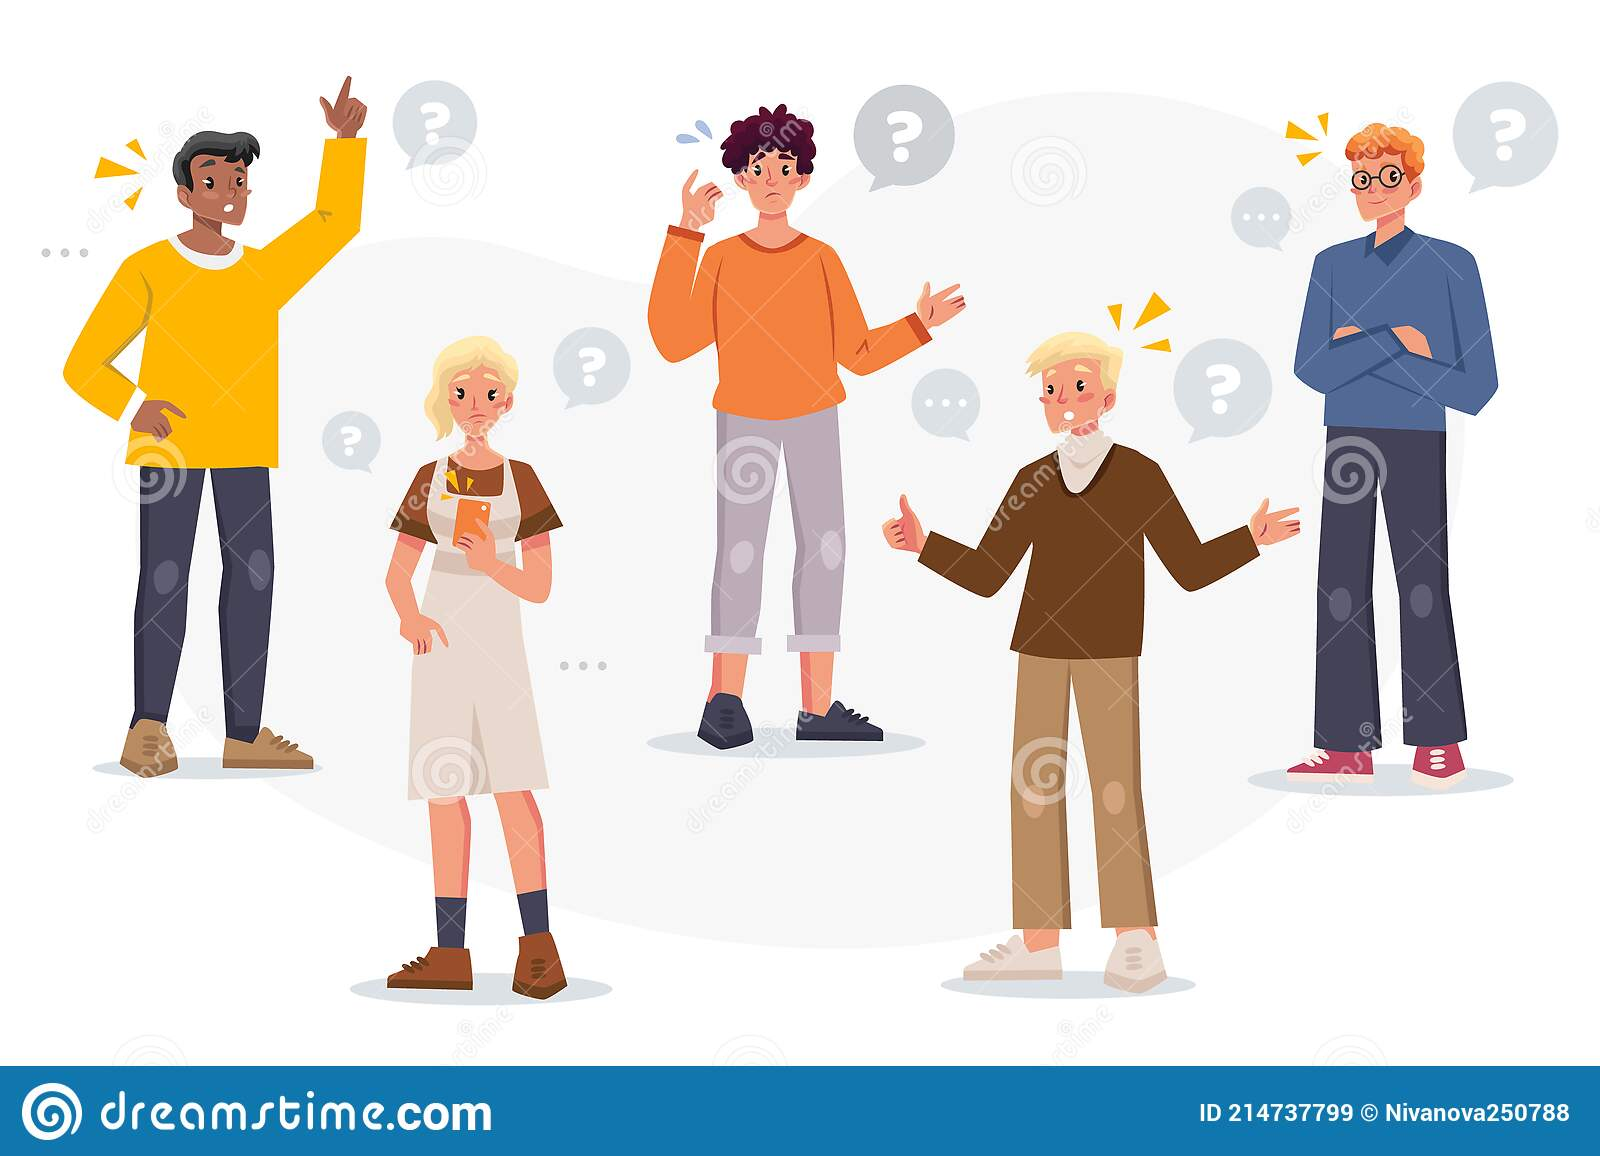 Group People Asking Questions Stock Illustrations – 156 Group People Asking  Questions Stock Illustrations, Vectors & Clipart - Dreamstime